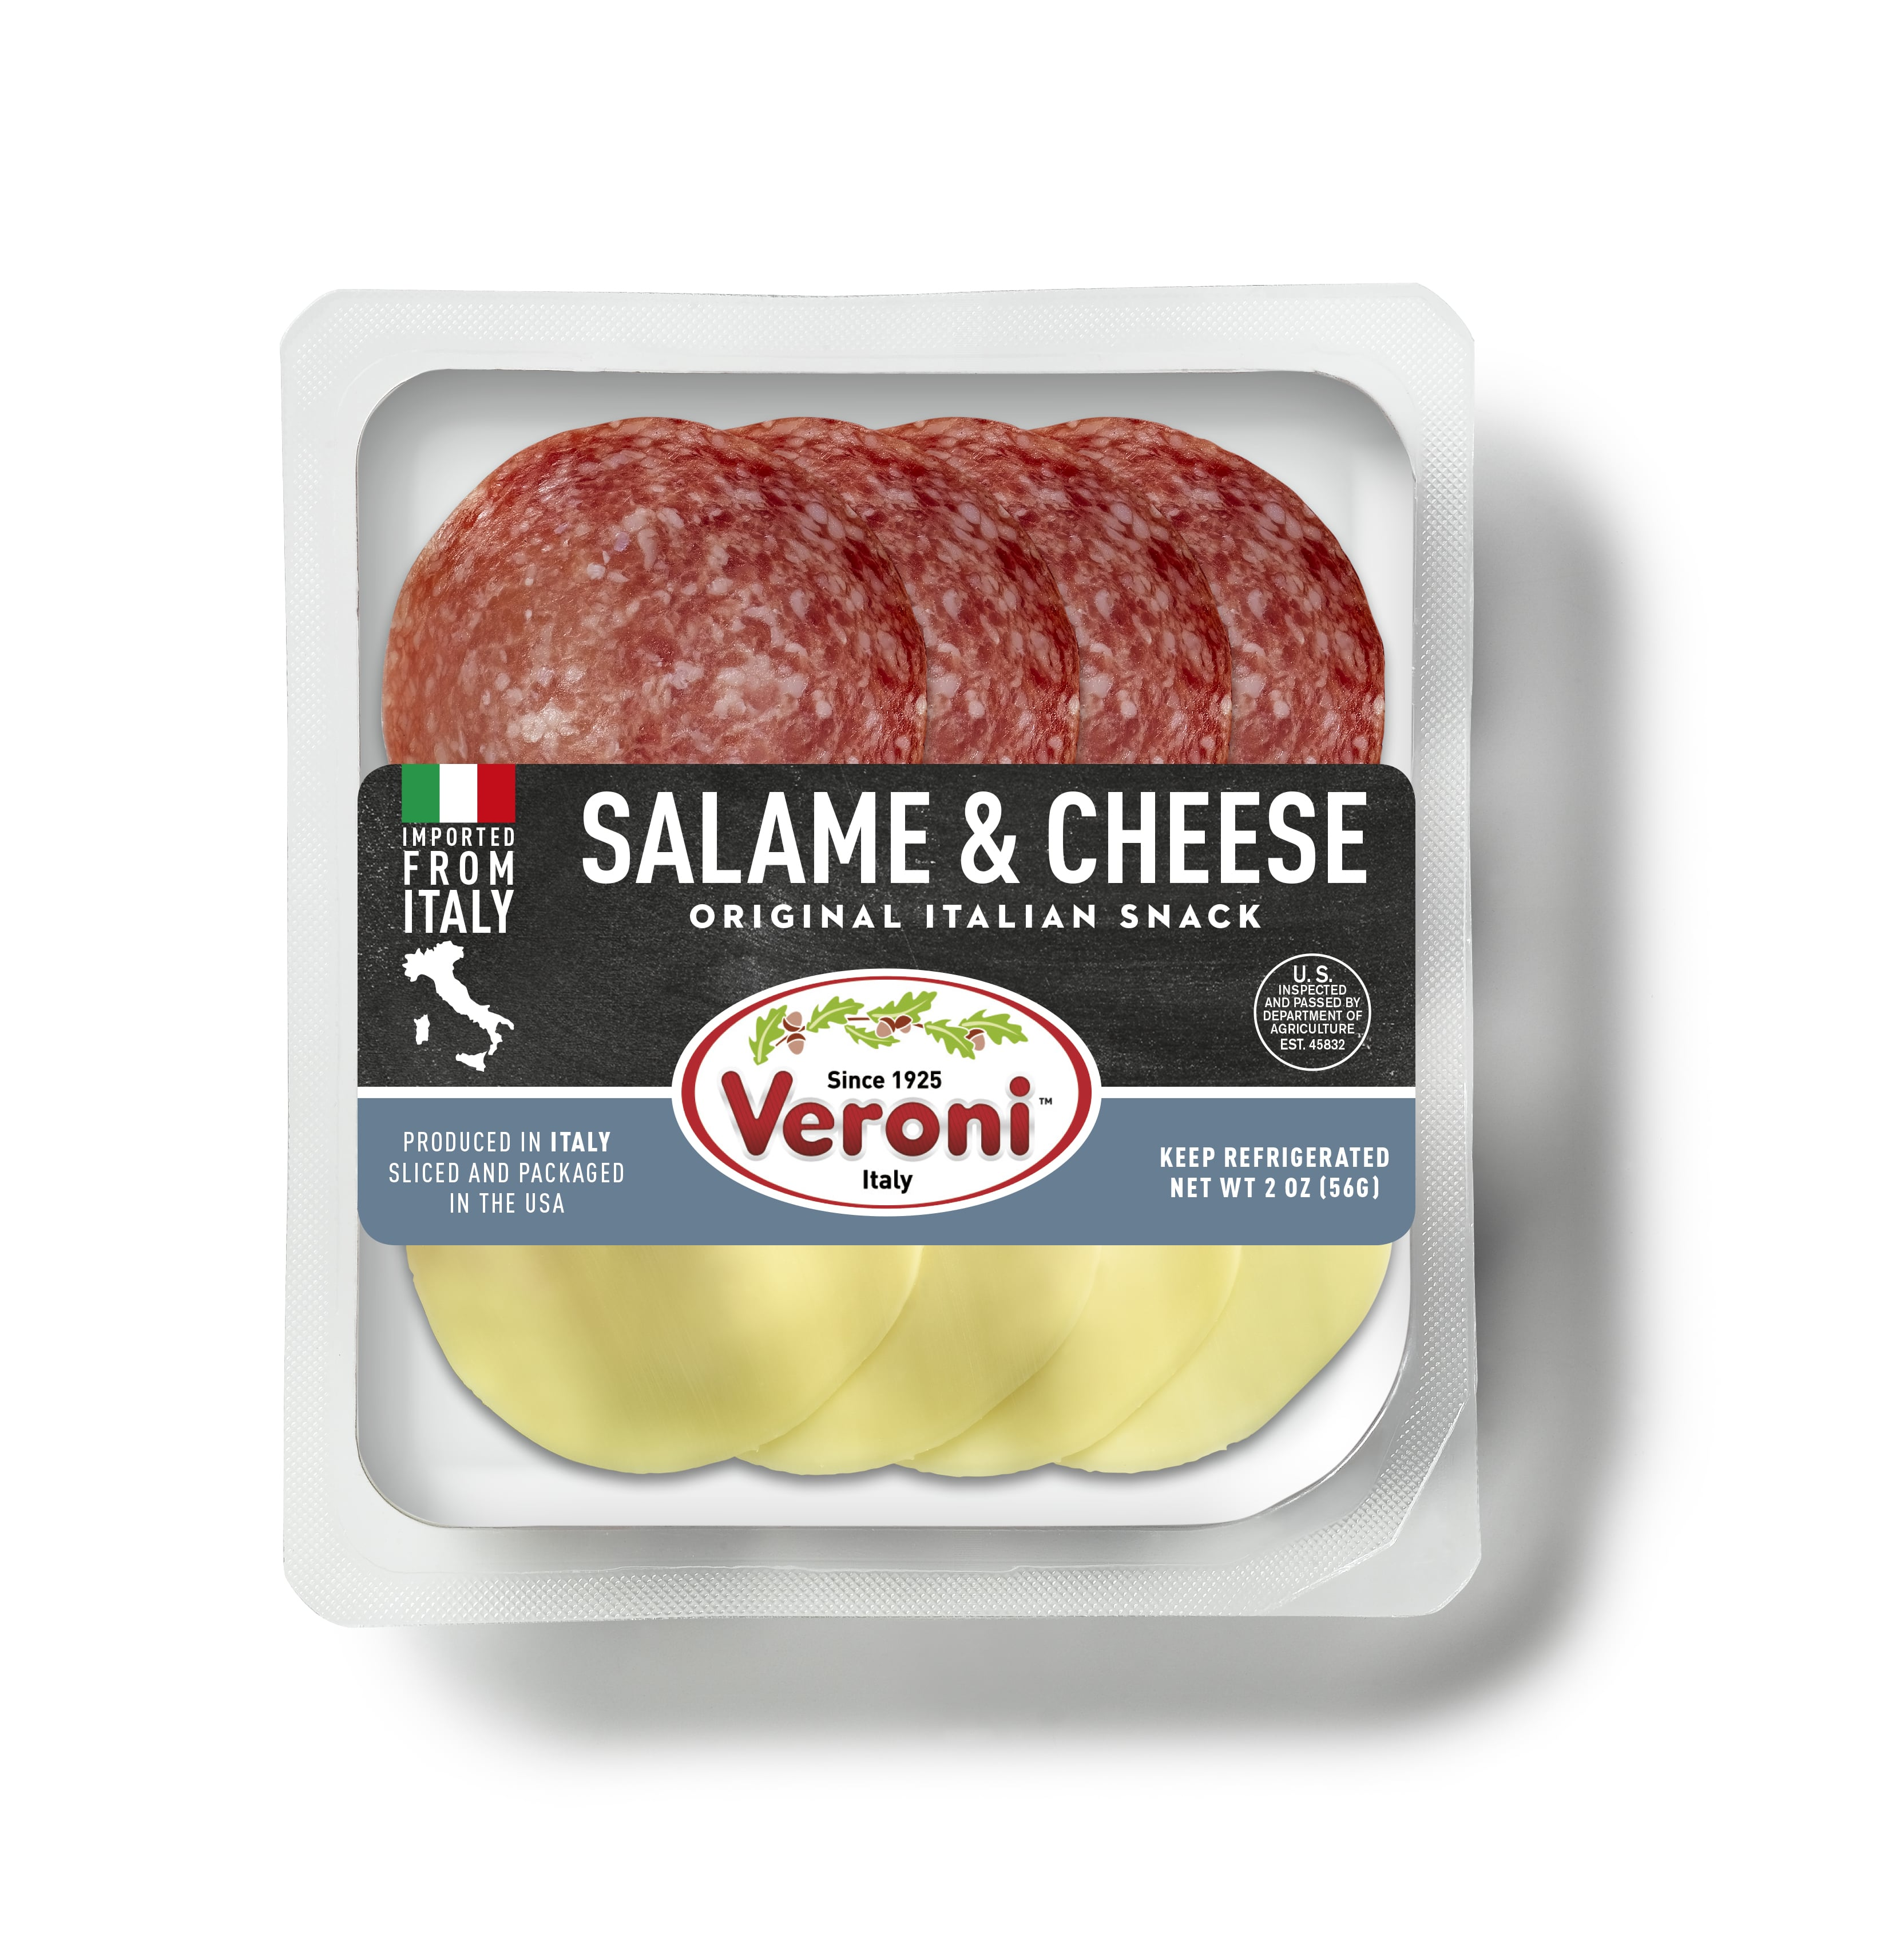 Veroni Italian Cured Meats Now Available in US